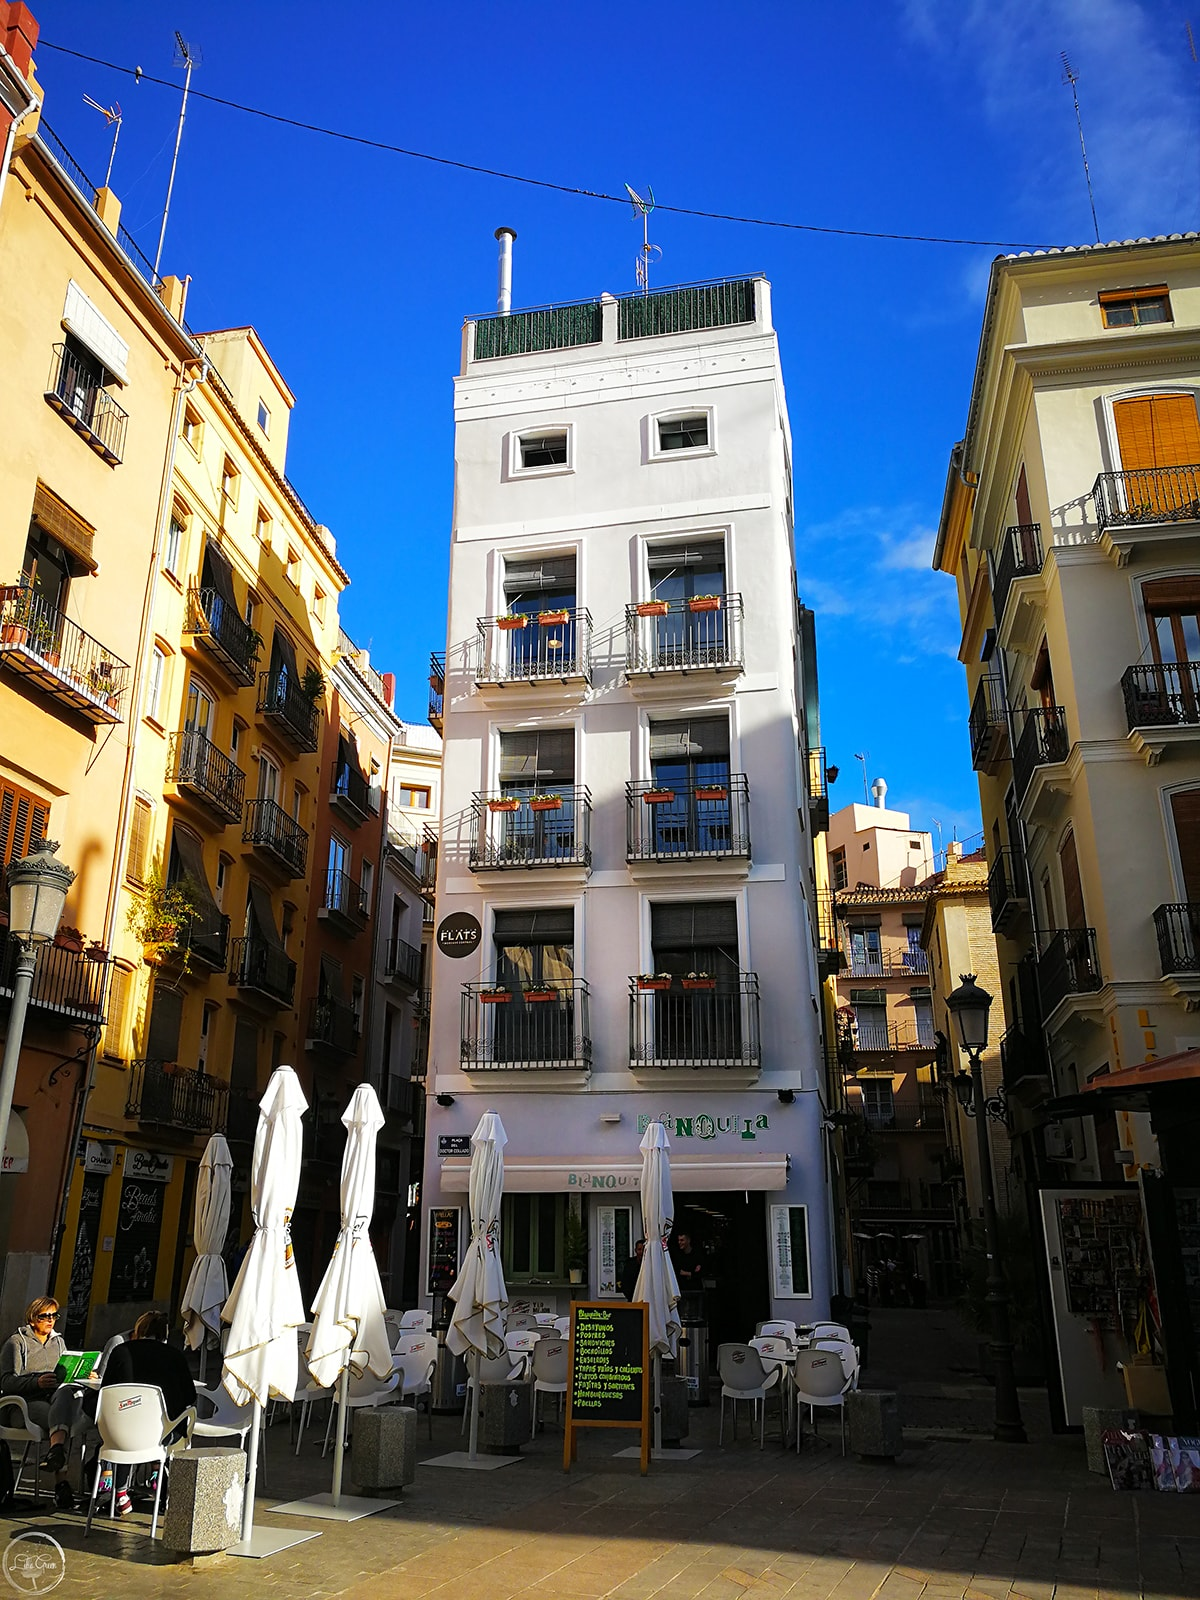 Architecture of Valencia